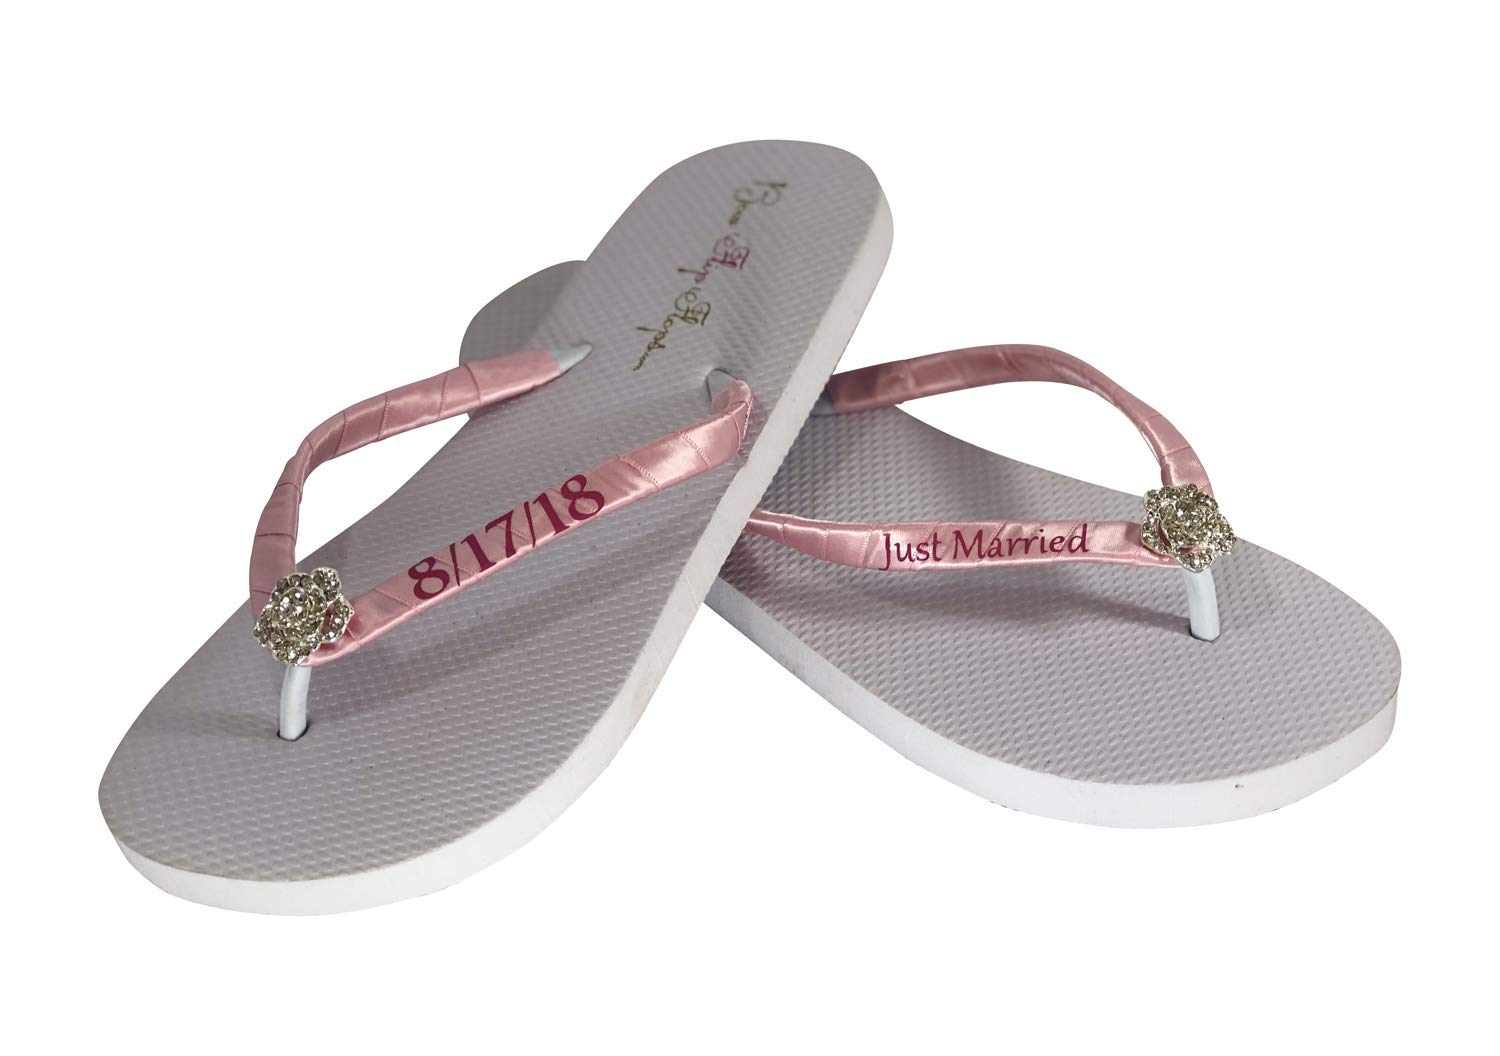 9094f7b08 Get Quotations · Just Married Wedding Flip Flops -Flat or Wedge Heel - Ivory  or White - Wedding